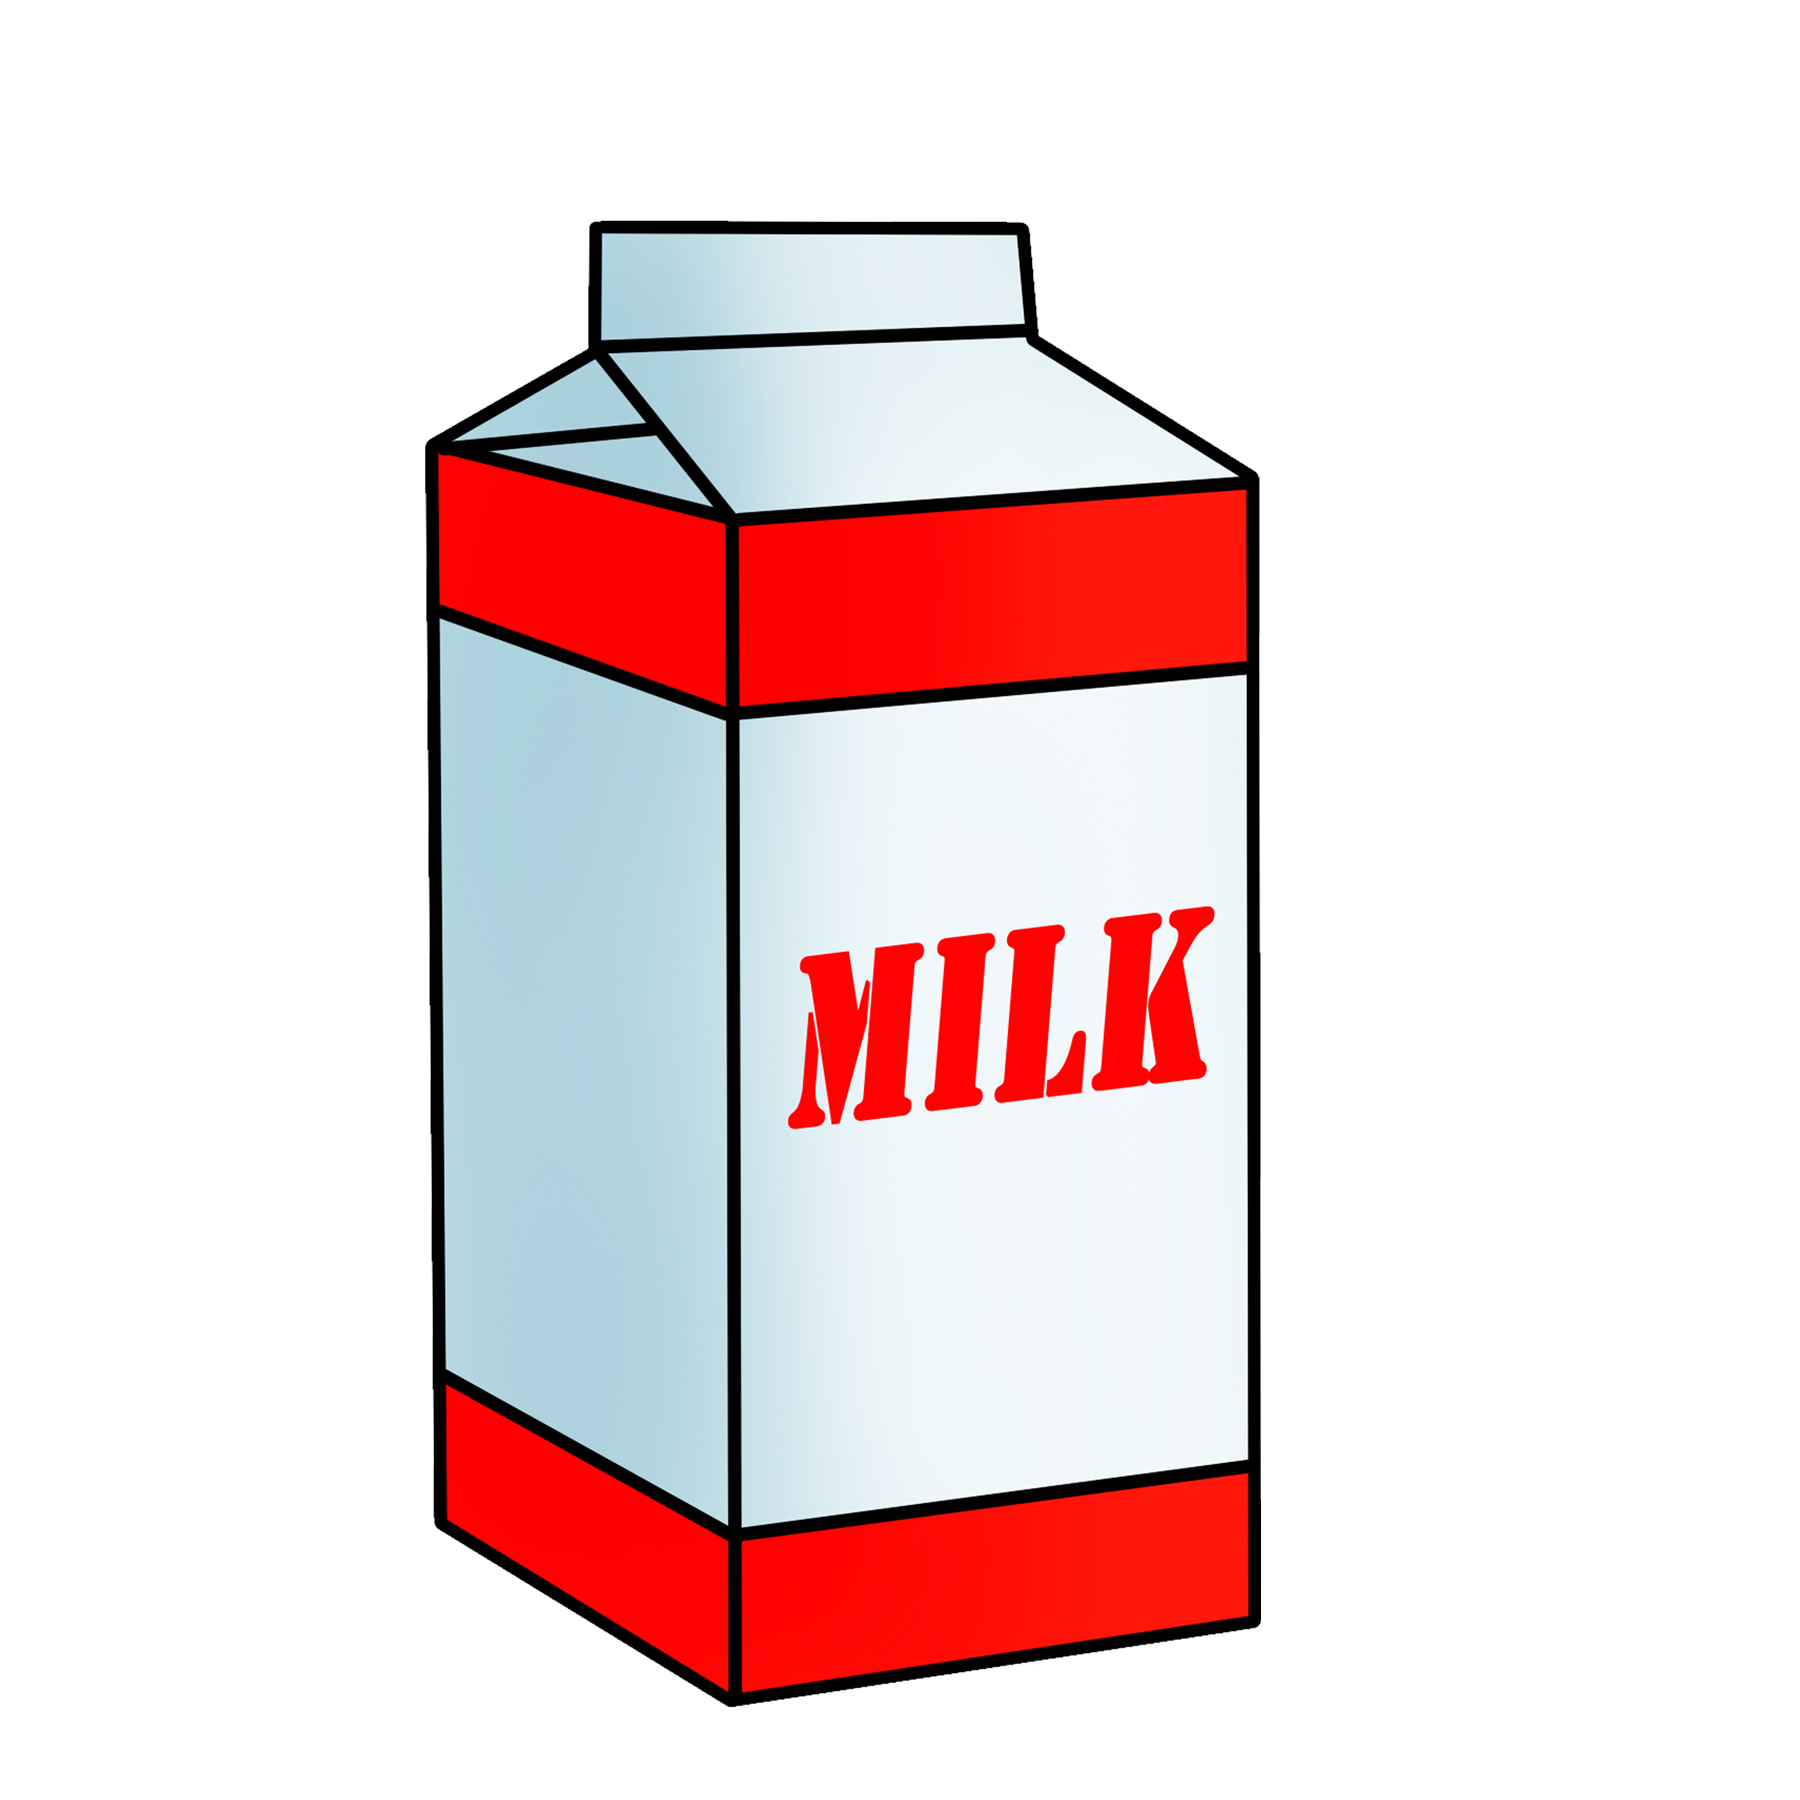 Milk graphics free by. Dairy clipart